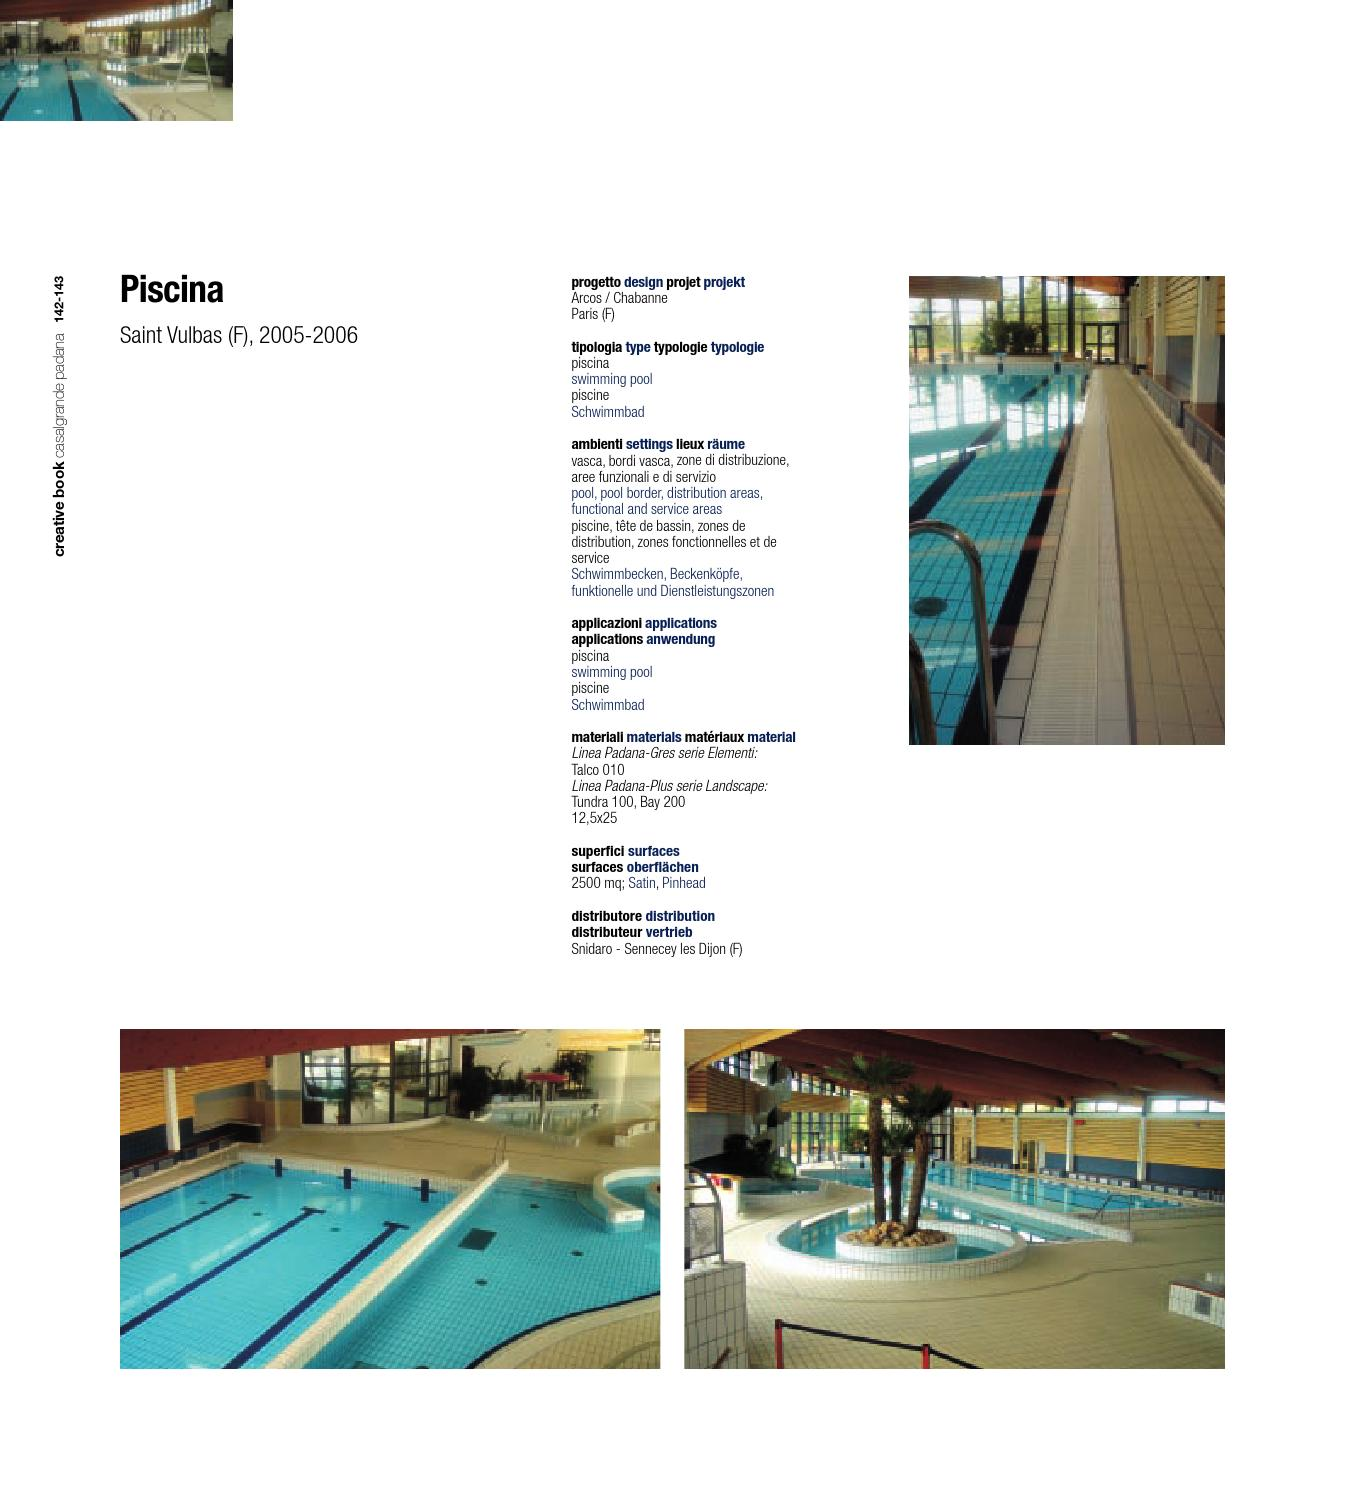 Creative book 6 by casalgrande padana s p a issuu for Casalgrande padana piscine